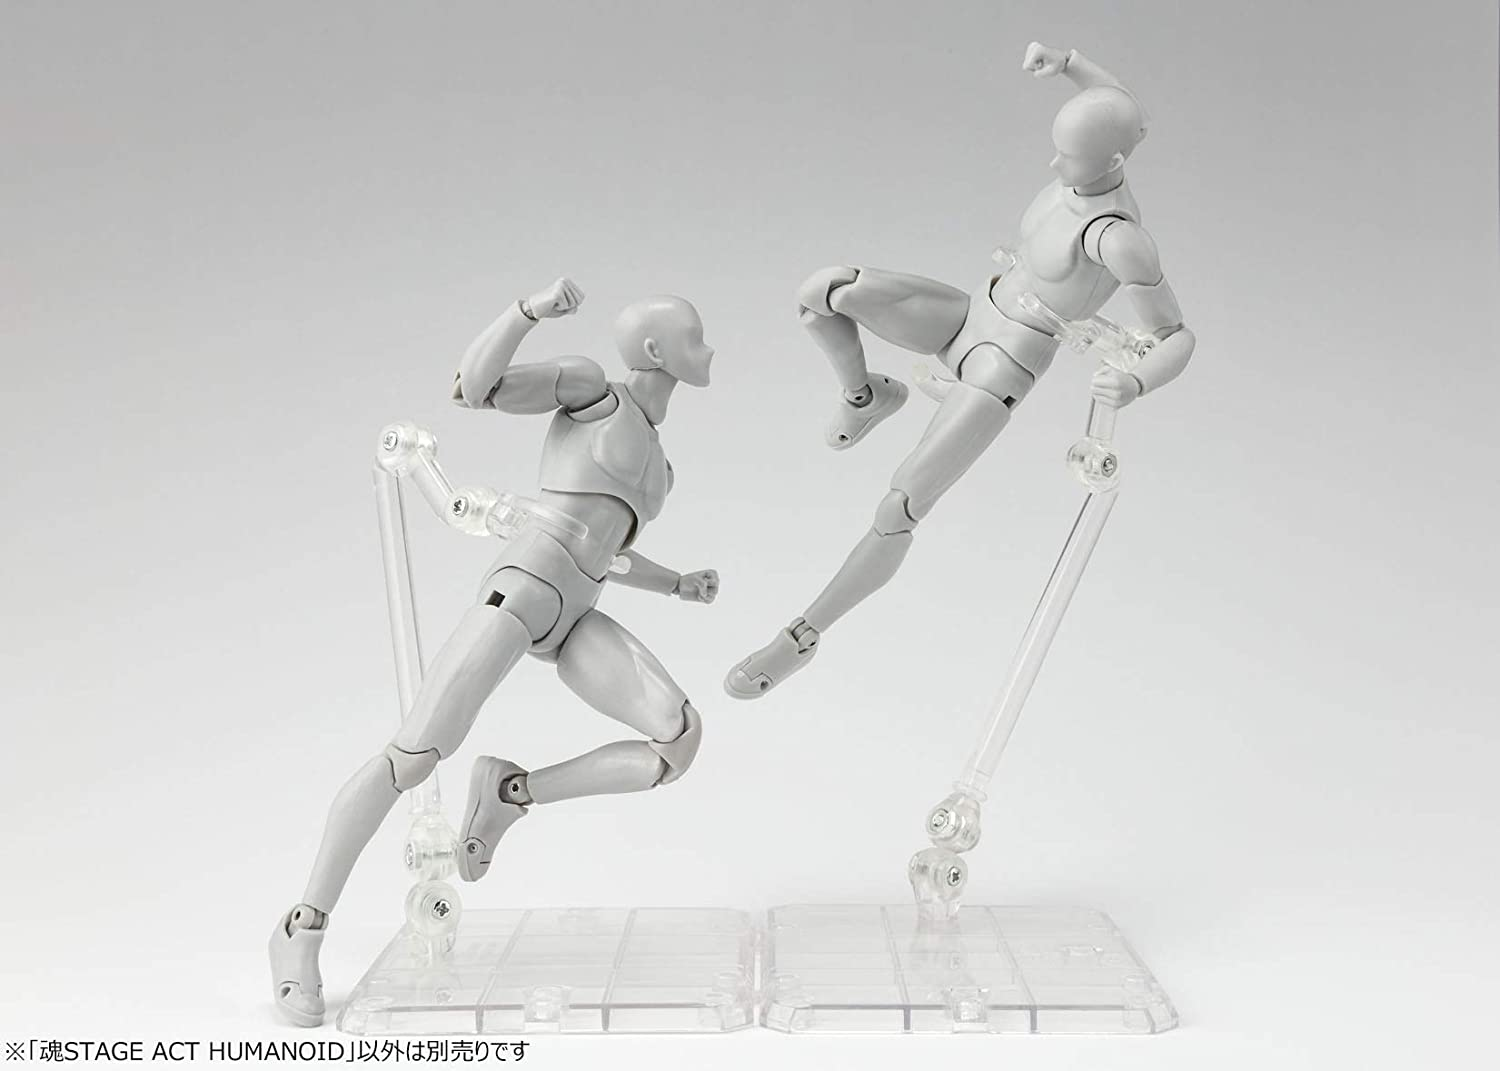 Figuarts Bandai Tamashii Stage Act 4 for Humanoid Clear Stand Set of 2 S.H